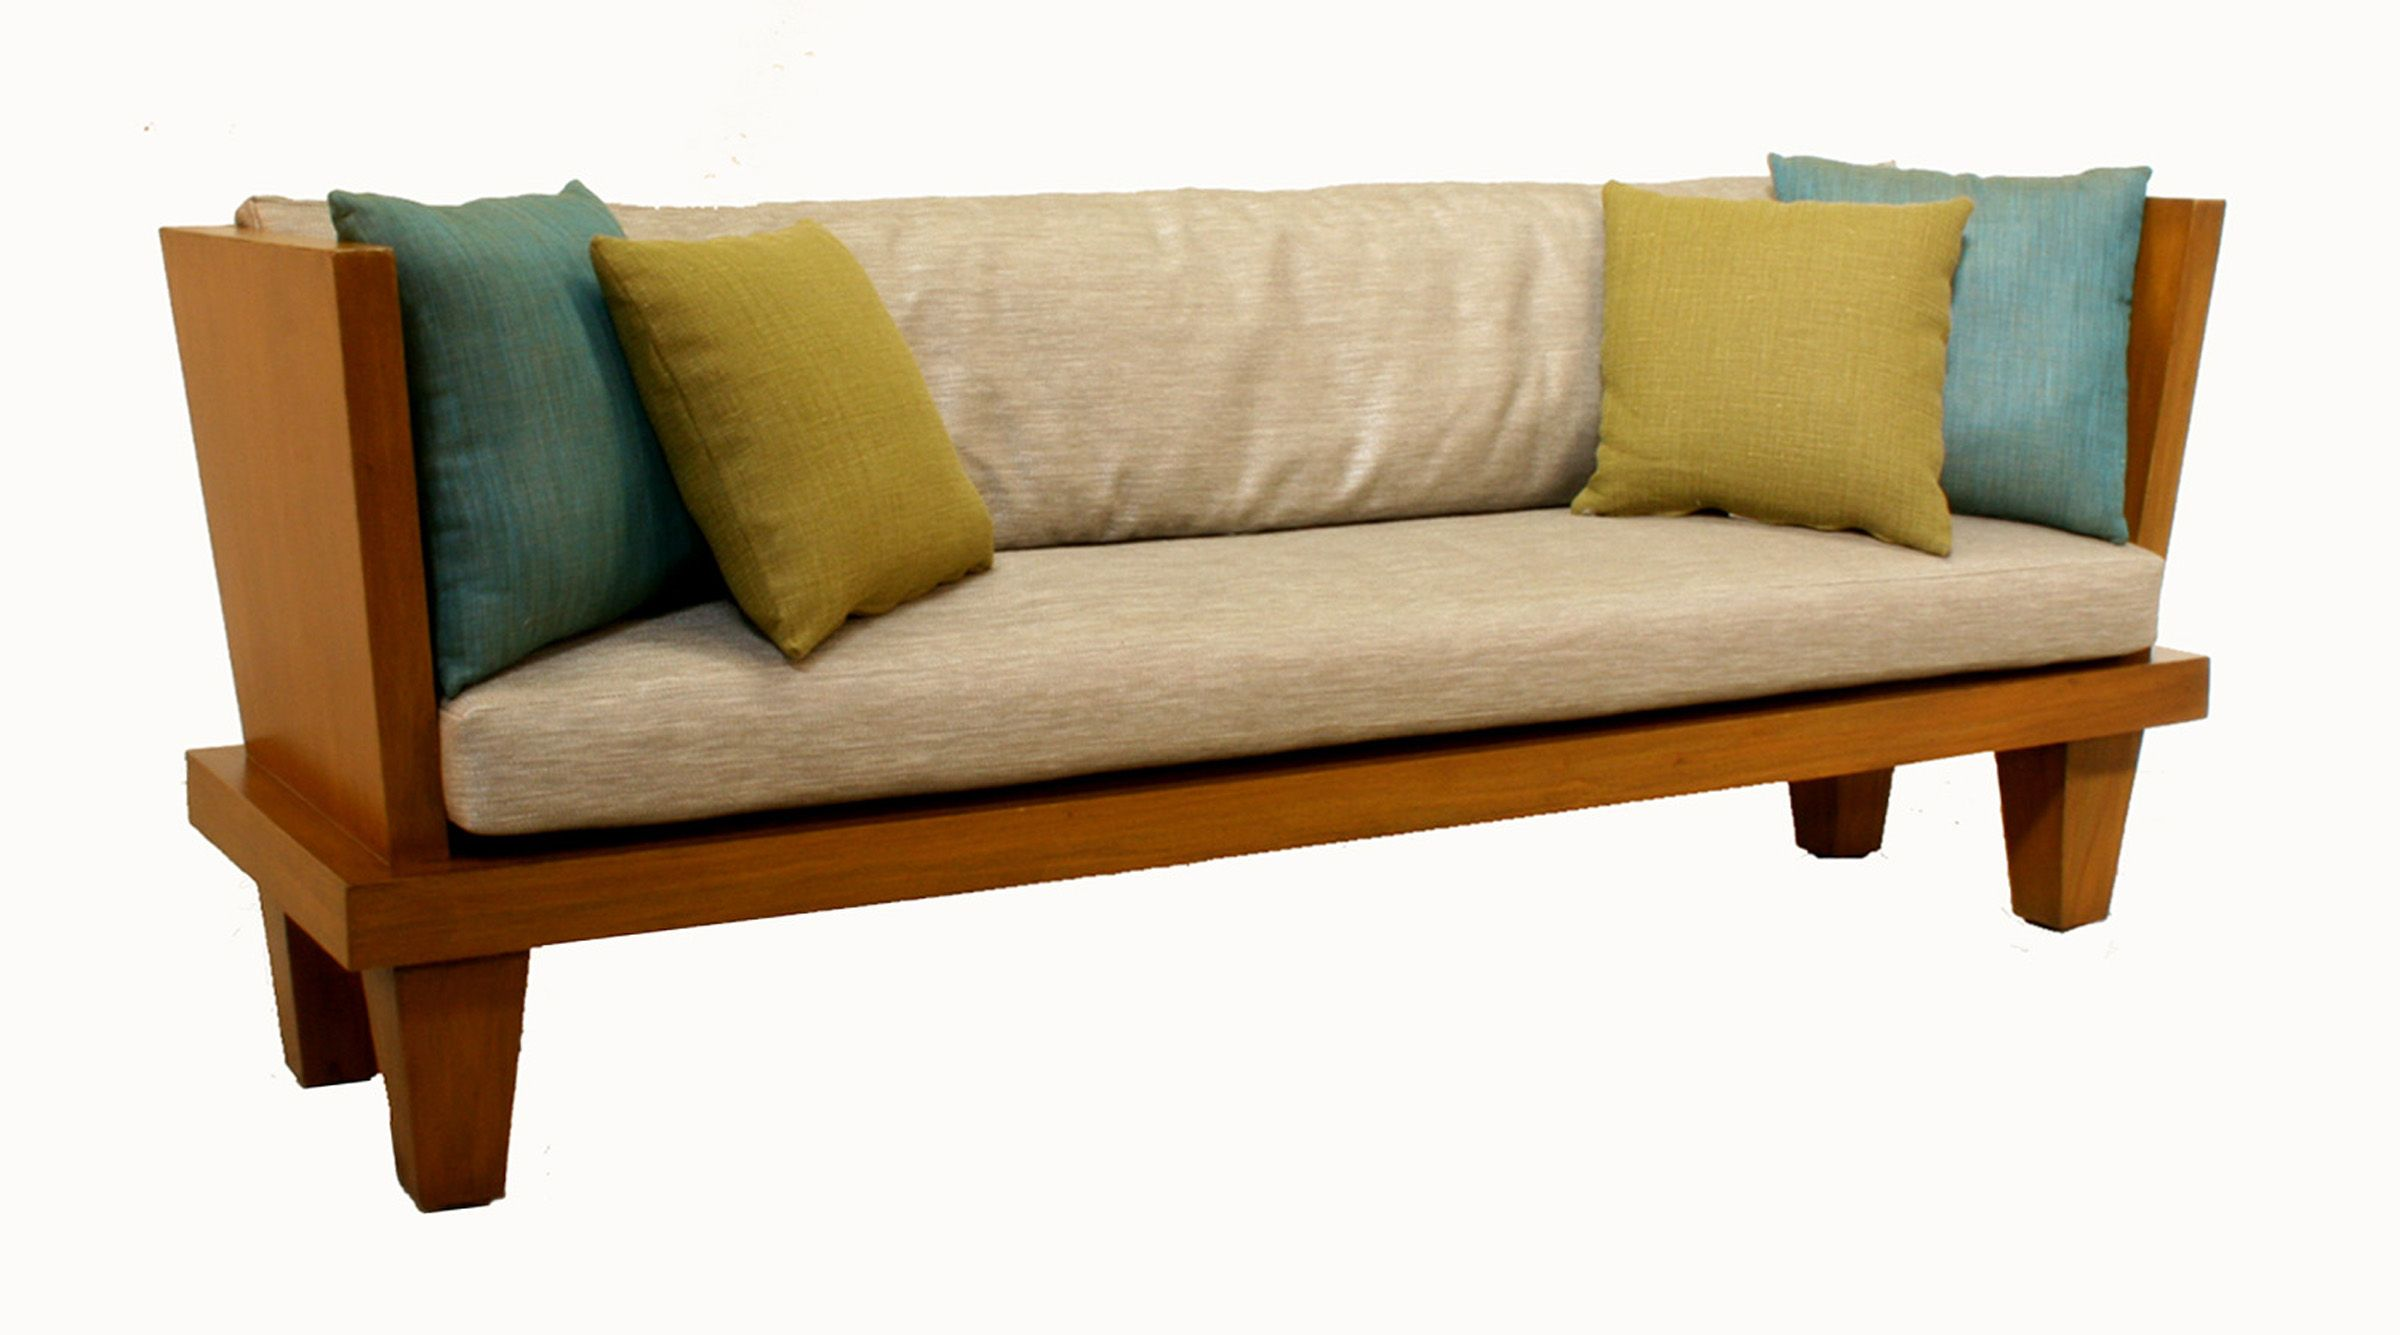 Amusing Settee Bench For Home Furniture Ideas Wooden With Beige Cushion Seat And Back